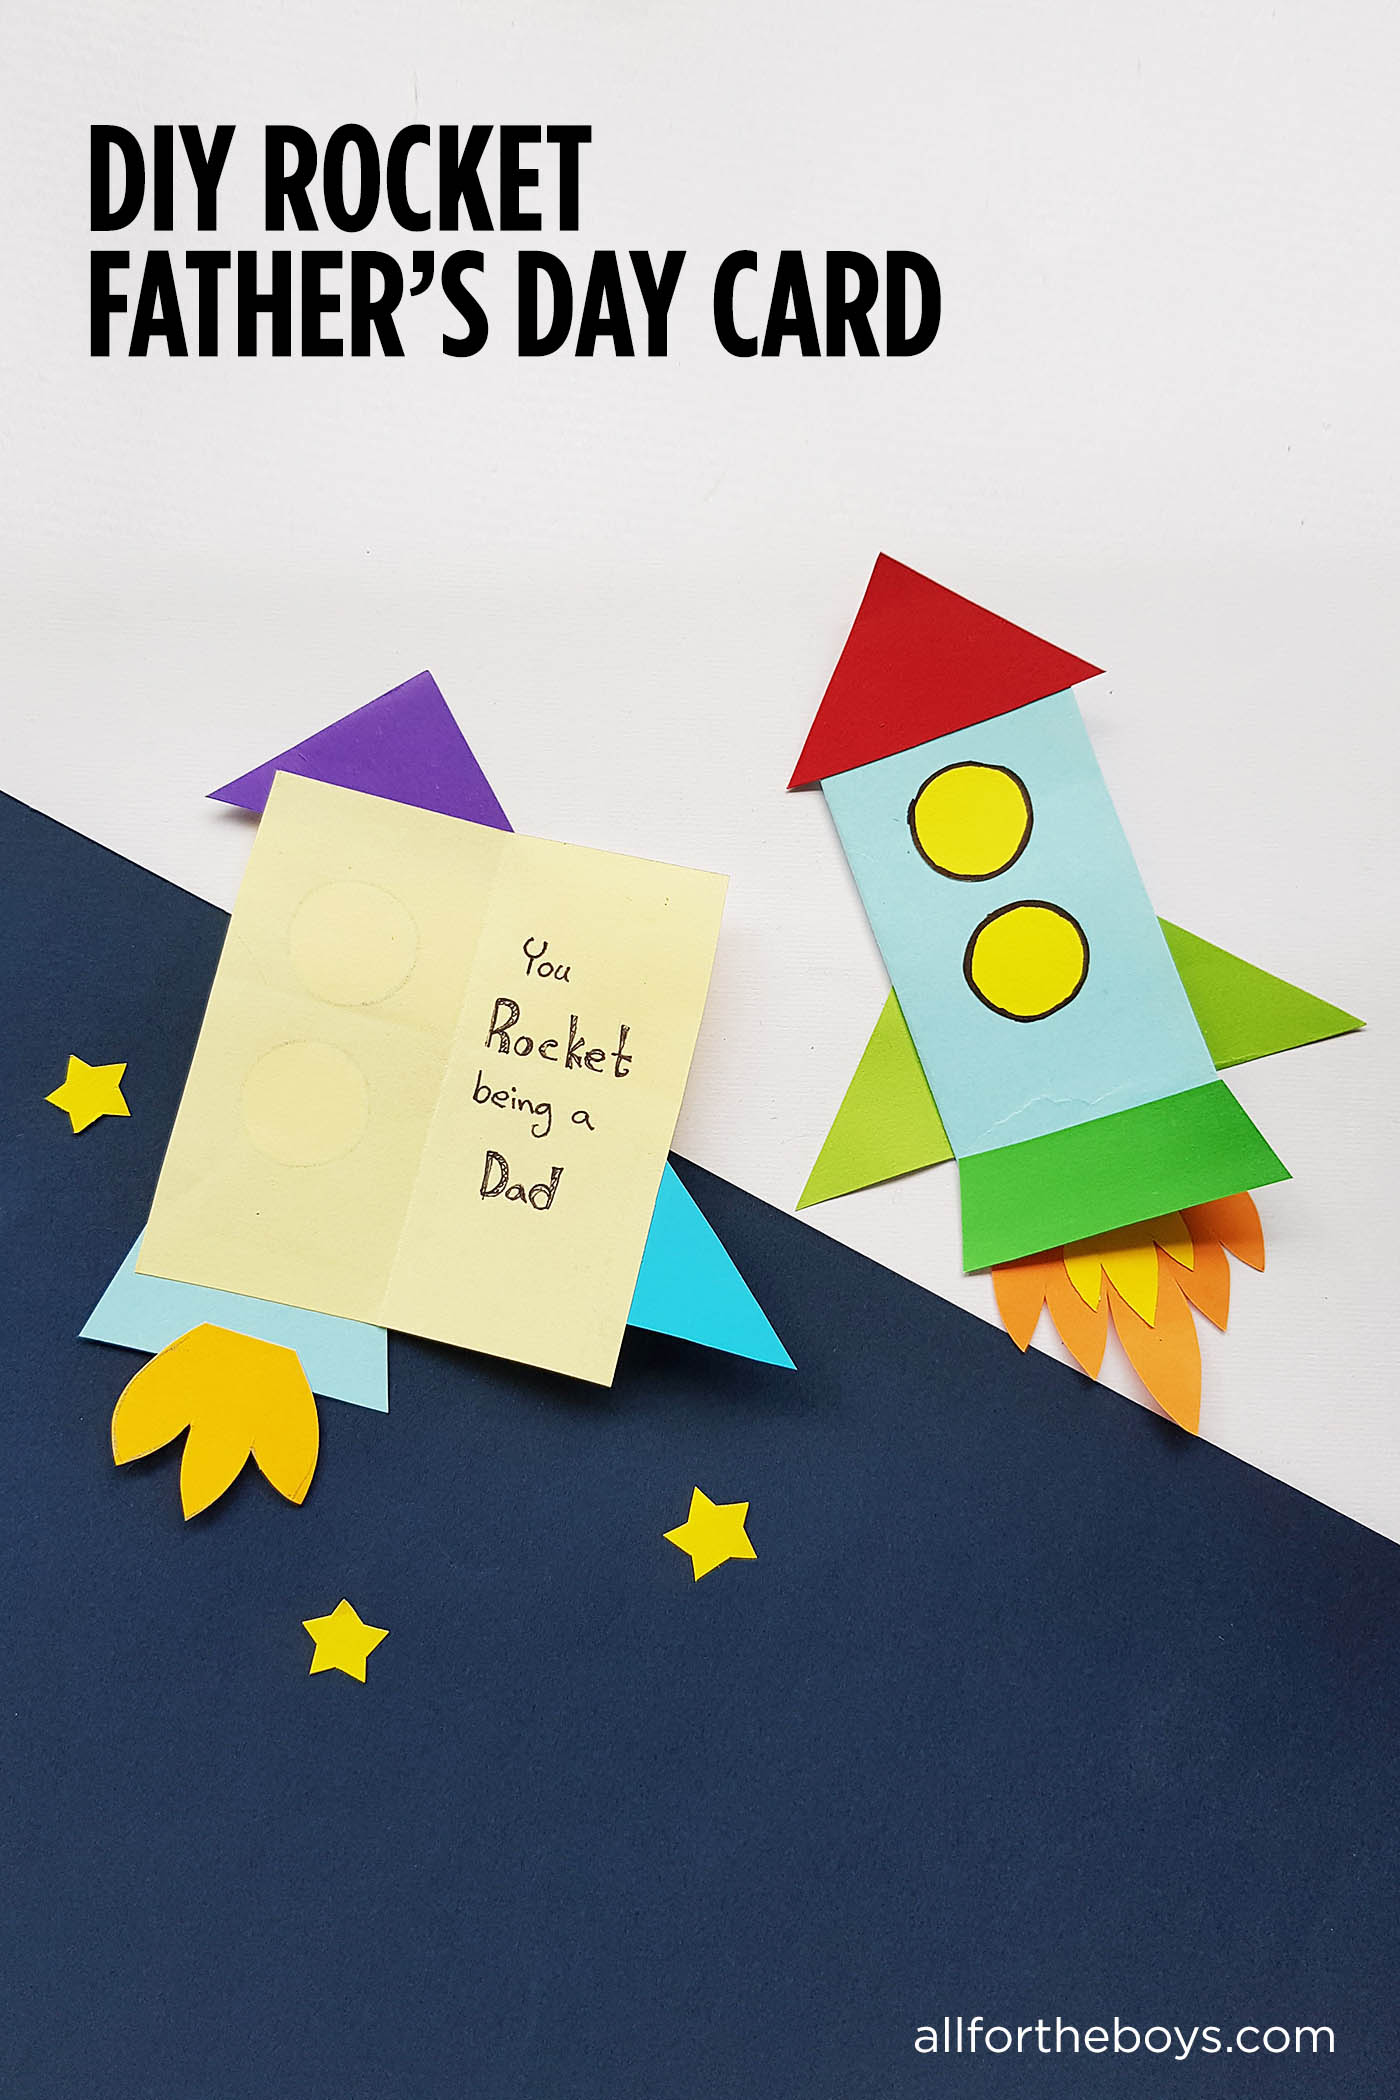 DIY Punny Rocket Father's Day Card - You Rock-et Being a Dad